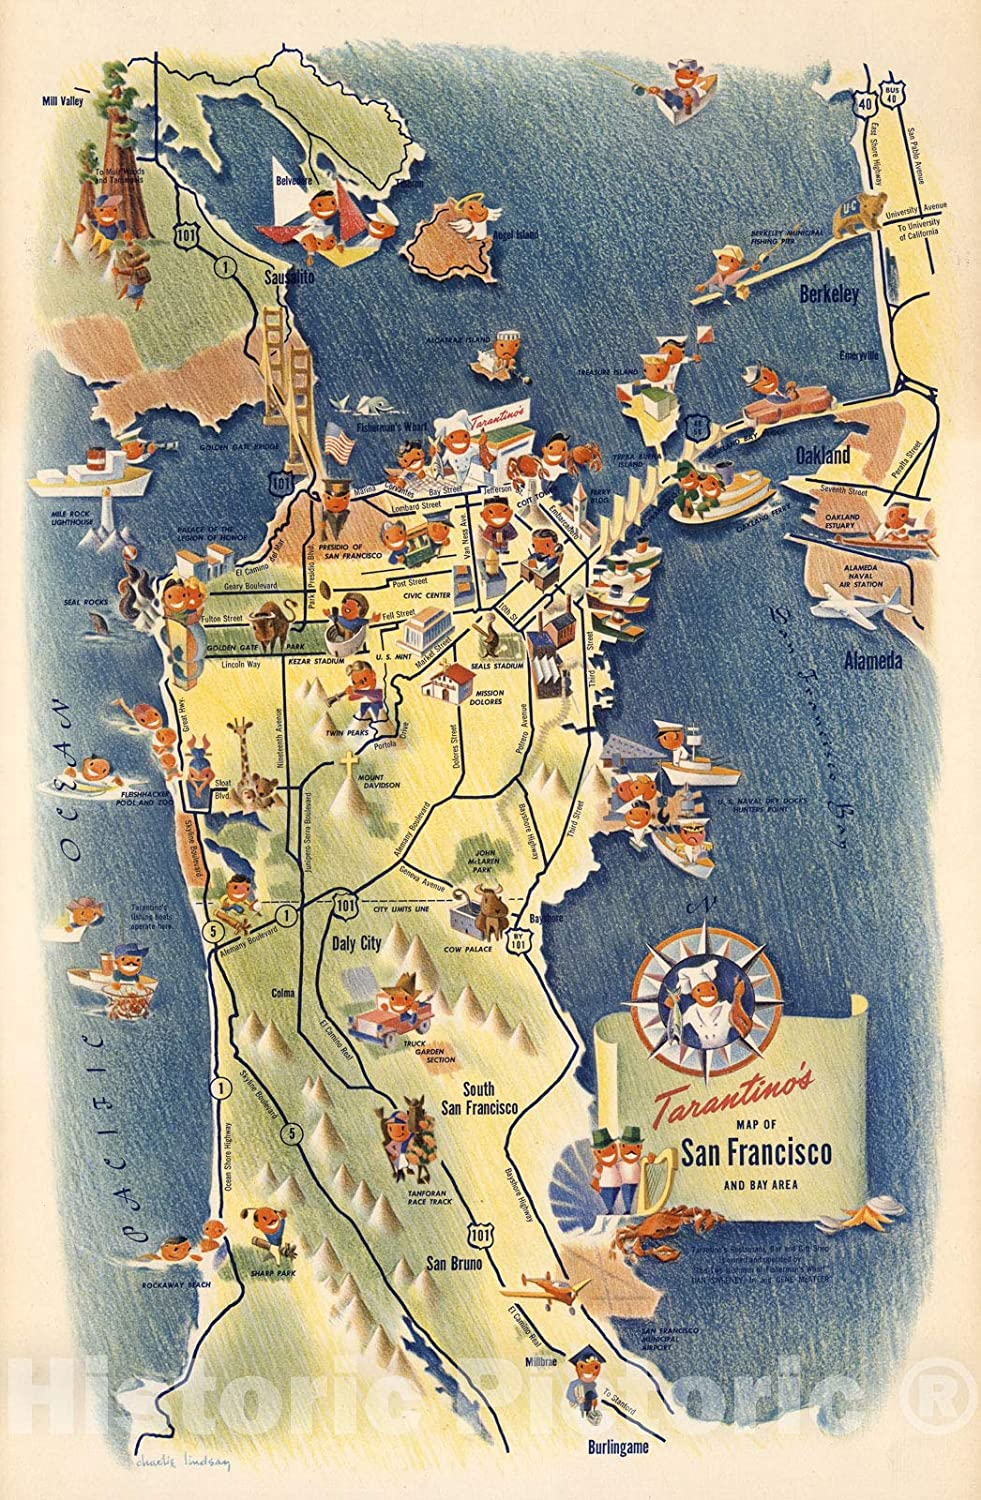 Amazon Com Historic Map Tarantinos Map Of San Francisco And Bay Area Charlie Lindsay 1950 Vintage Wall Art 44in X 67in Posters Prints The federal tax bill, passed in december 2017, allows investors to defer or eliminate capital gains on investments made in opportunity zones. historic map tarantinos map